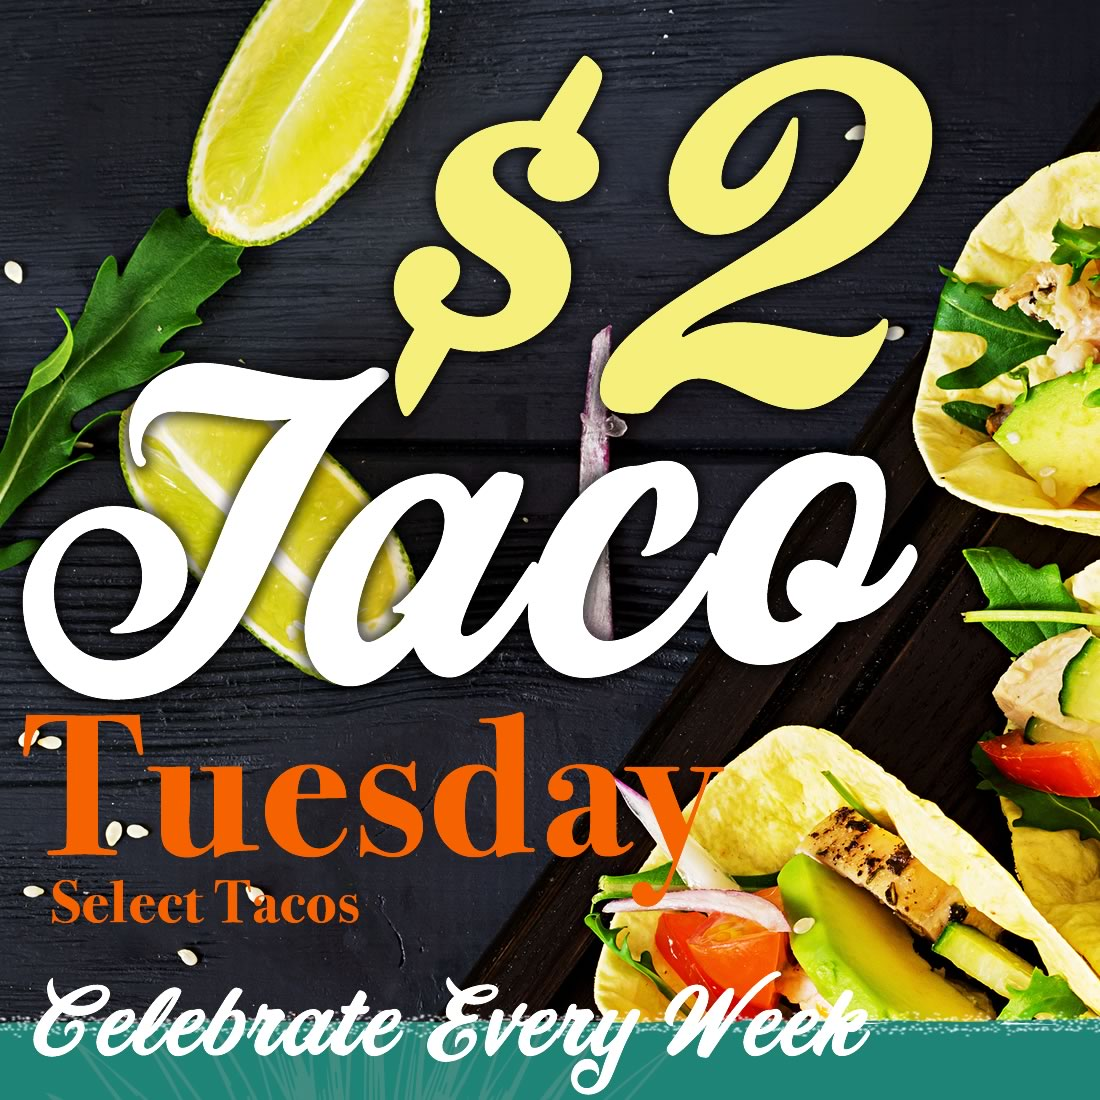 Destin Florida Upcoming Event Taco Tuesday at Mezcal